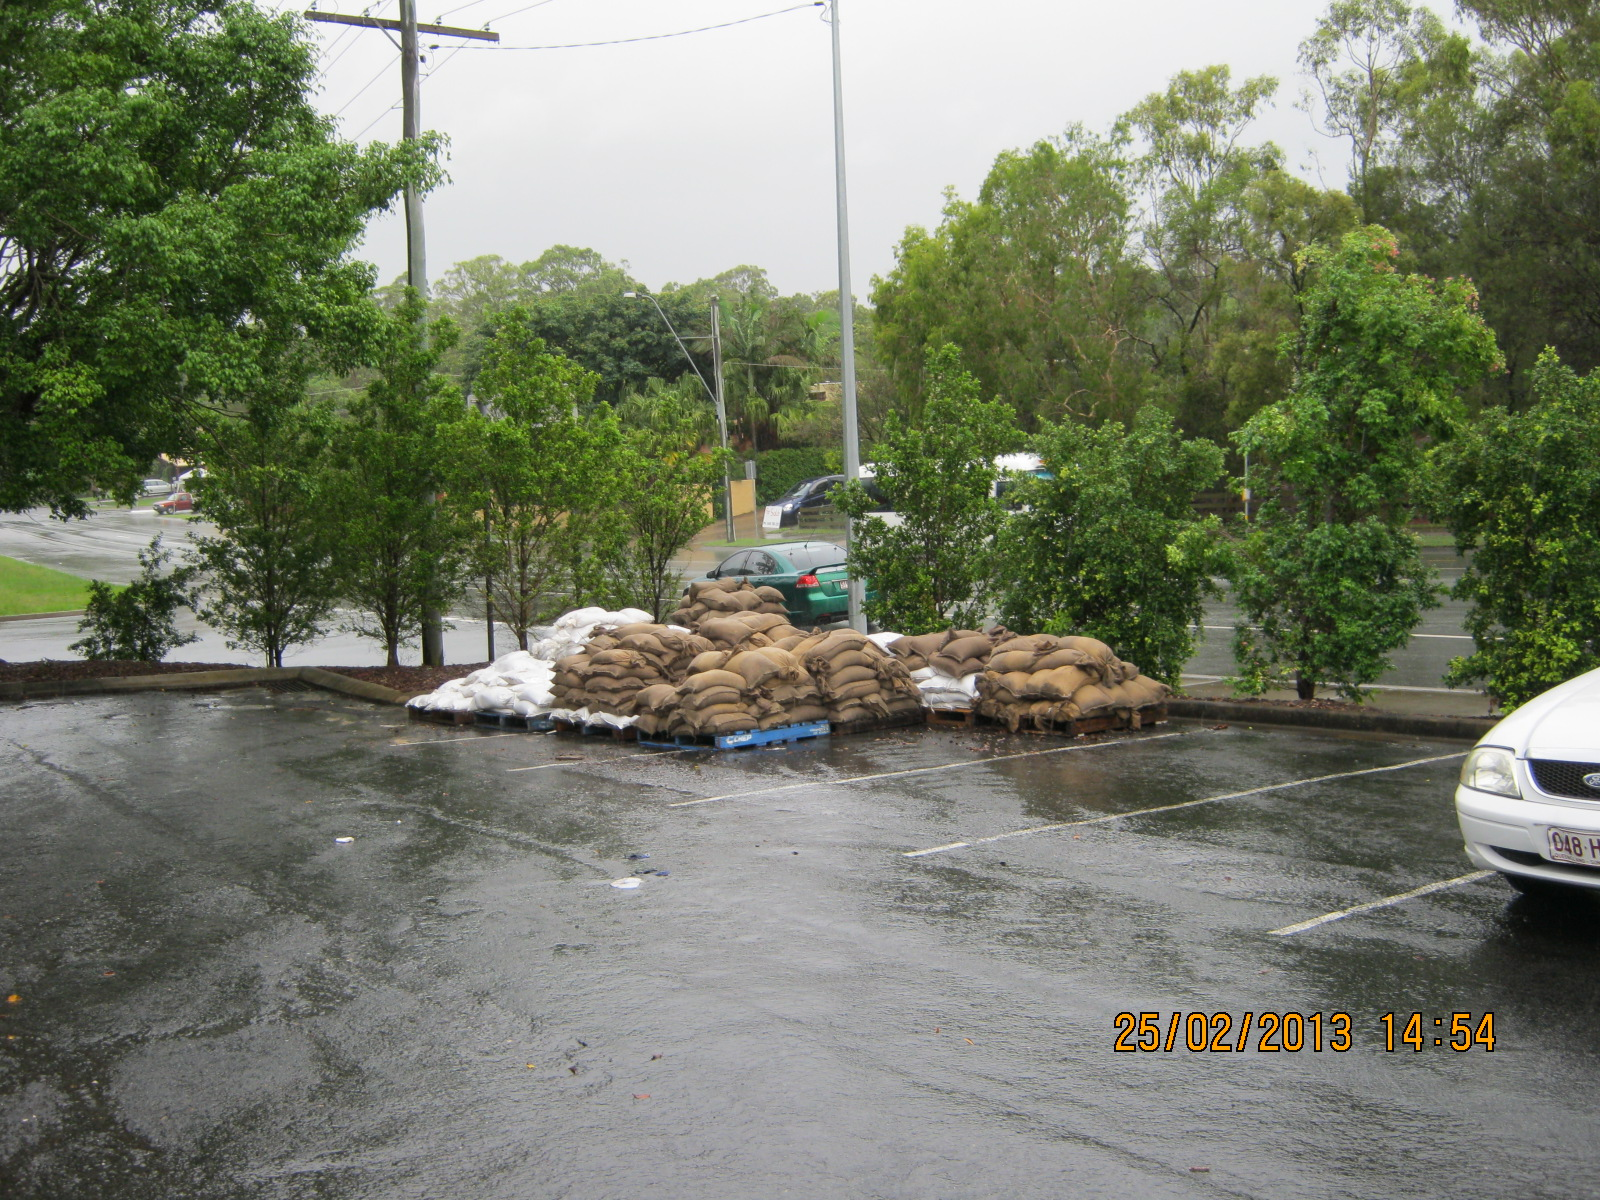 Sand bags - South Street Depot